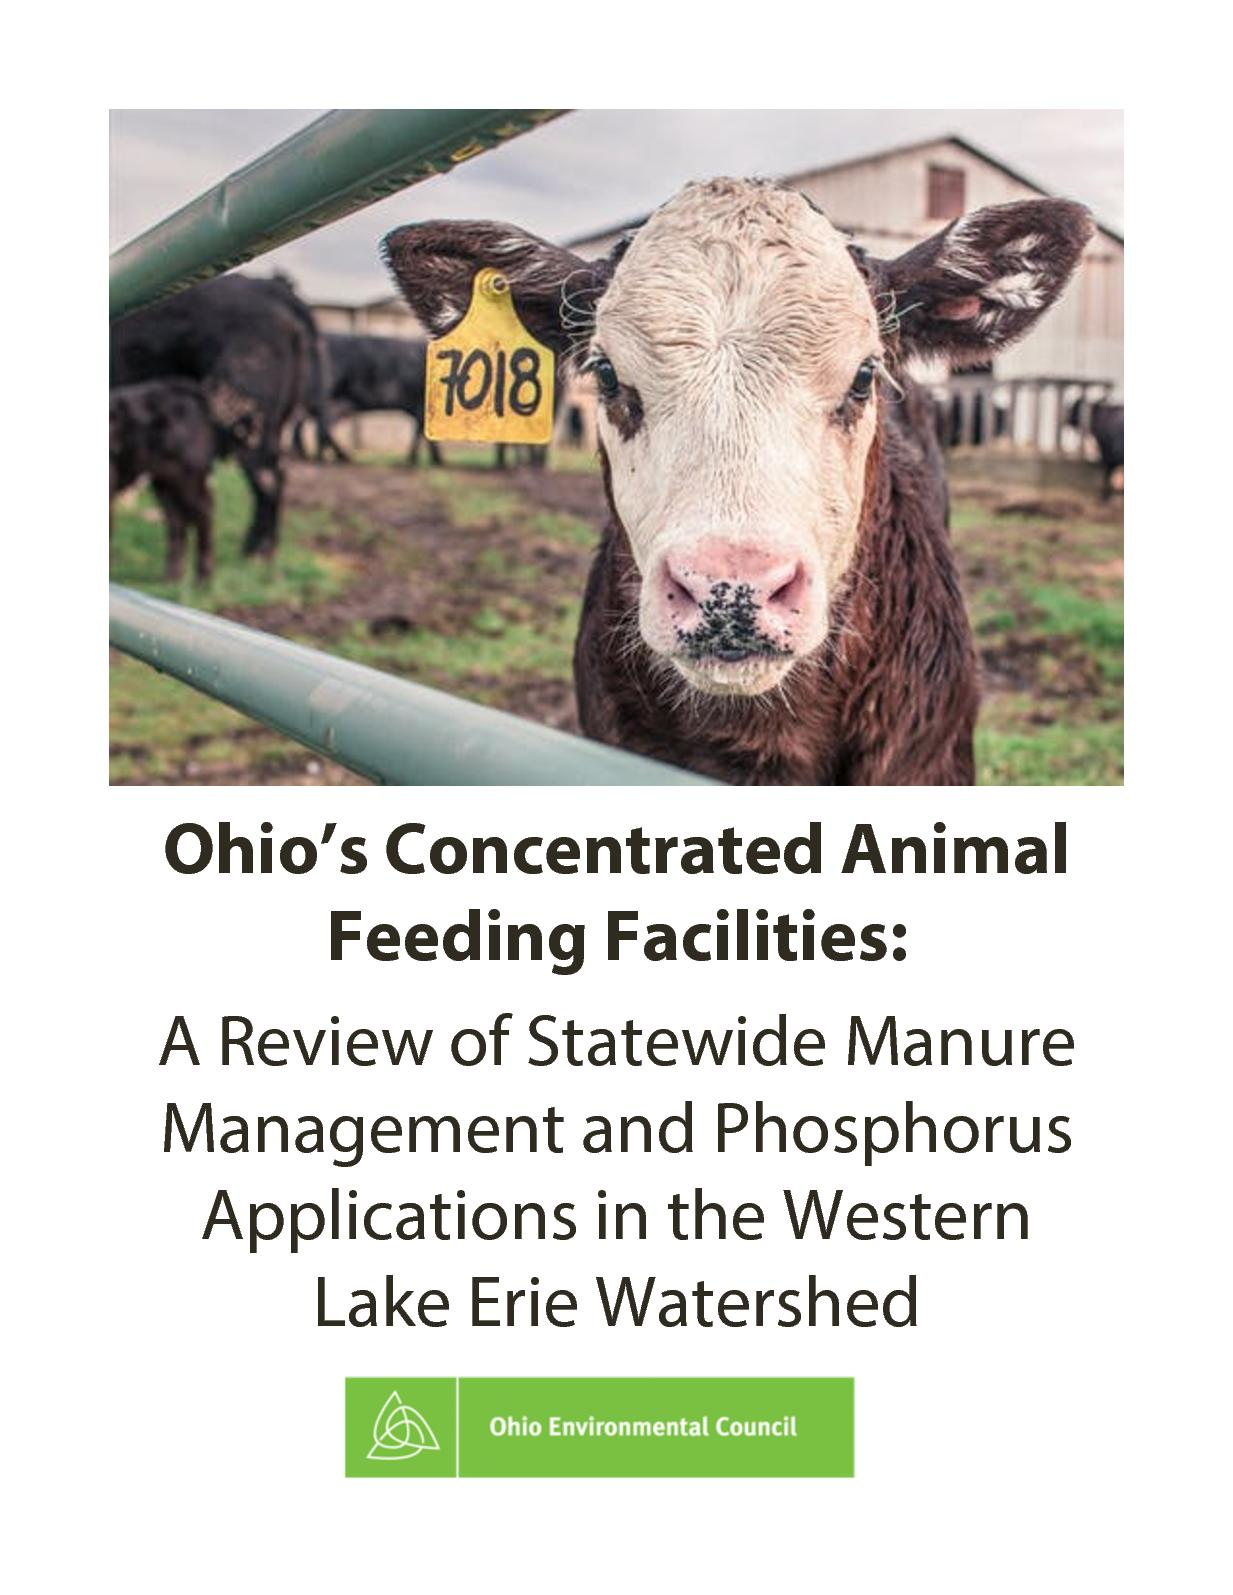 Ohio's Concentrated Animal Feeding Facilities